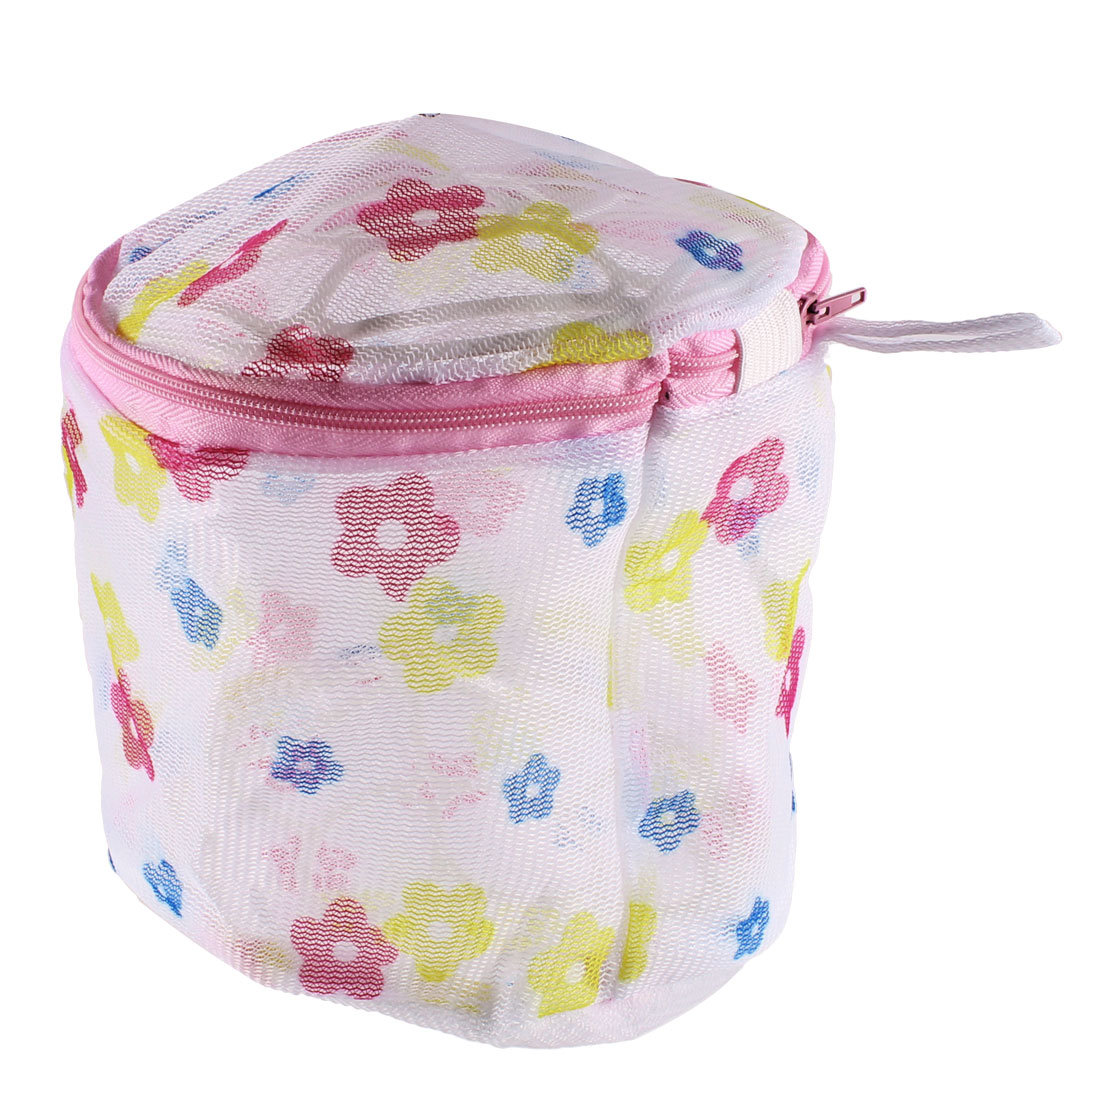 Women Netty Flower Print Bra Underwear Protecting Mesh Bag Basketer Colorful